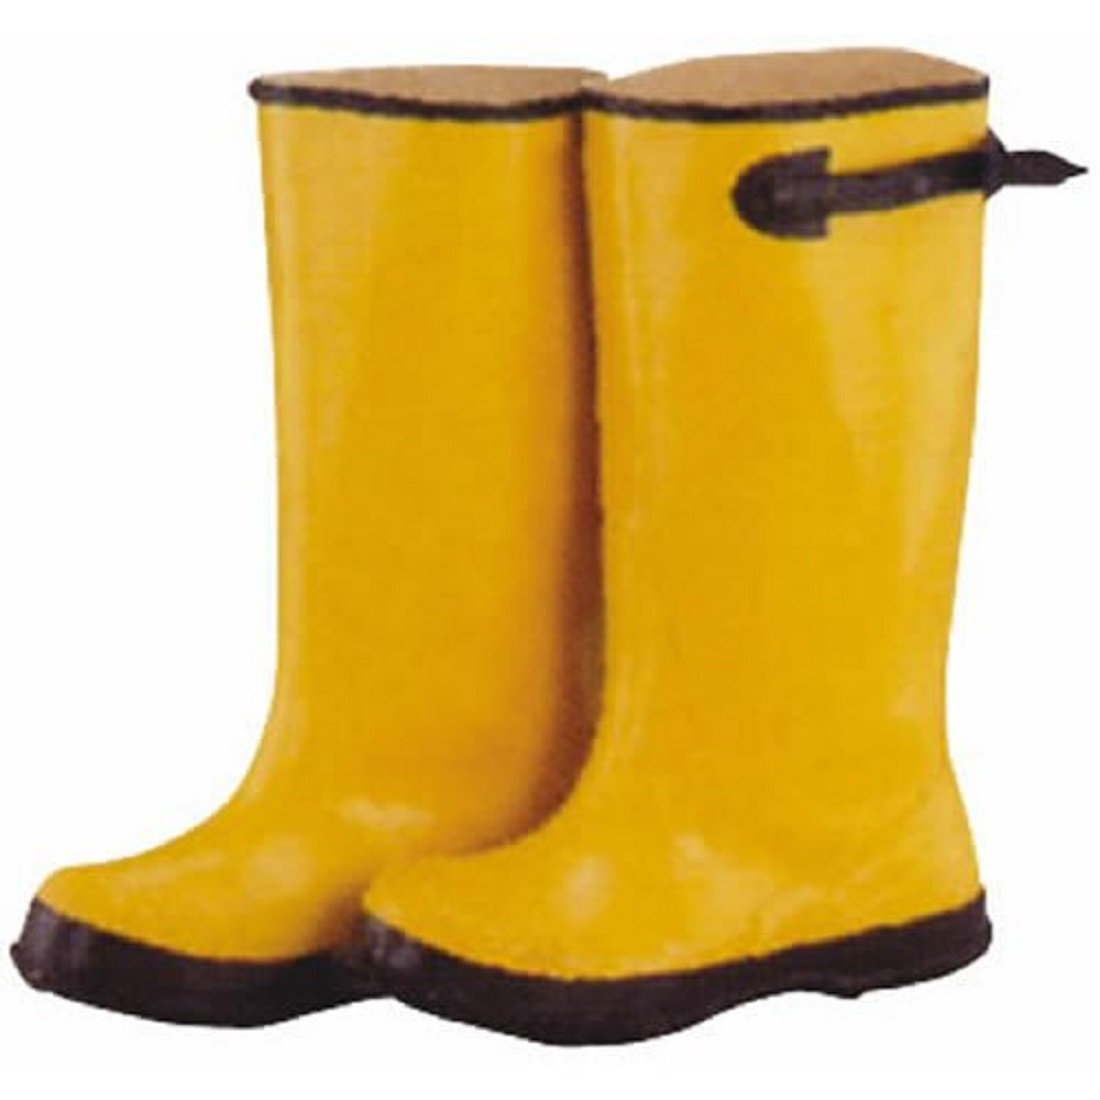 Diamondback RB001-14-C Adjustable Cuff Waterproof Over Shoe Boot 14 in Unisex Yellow